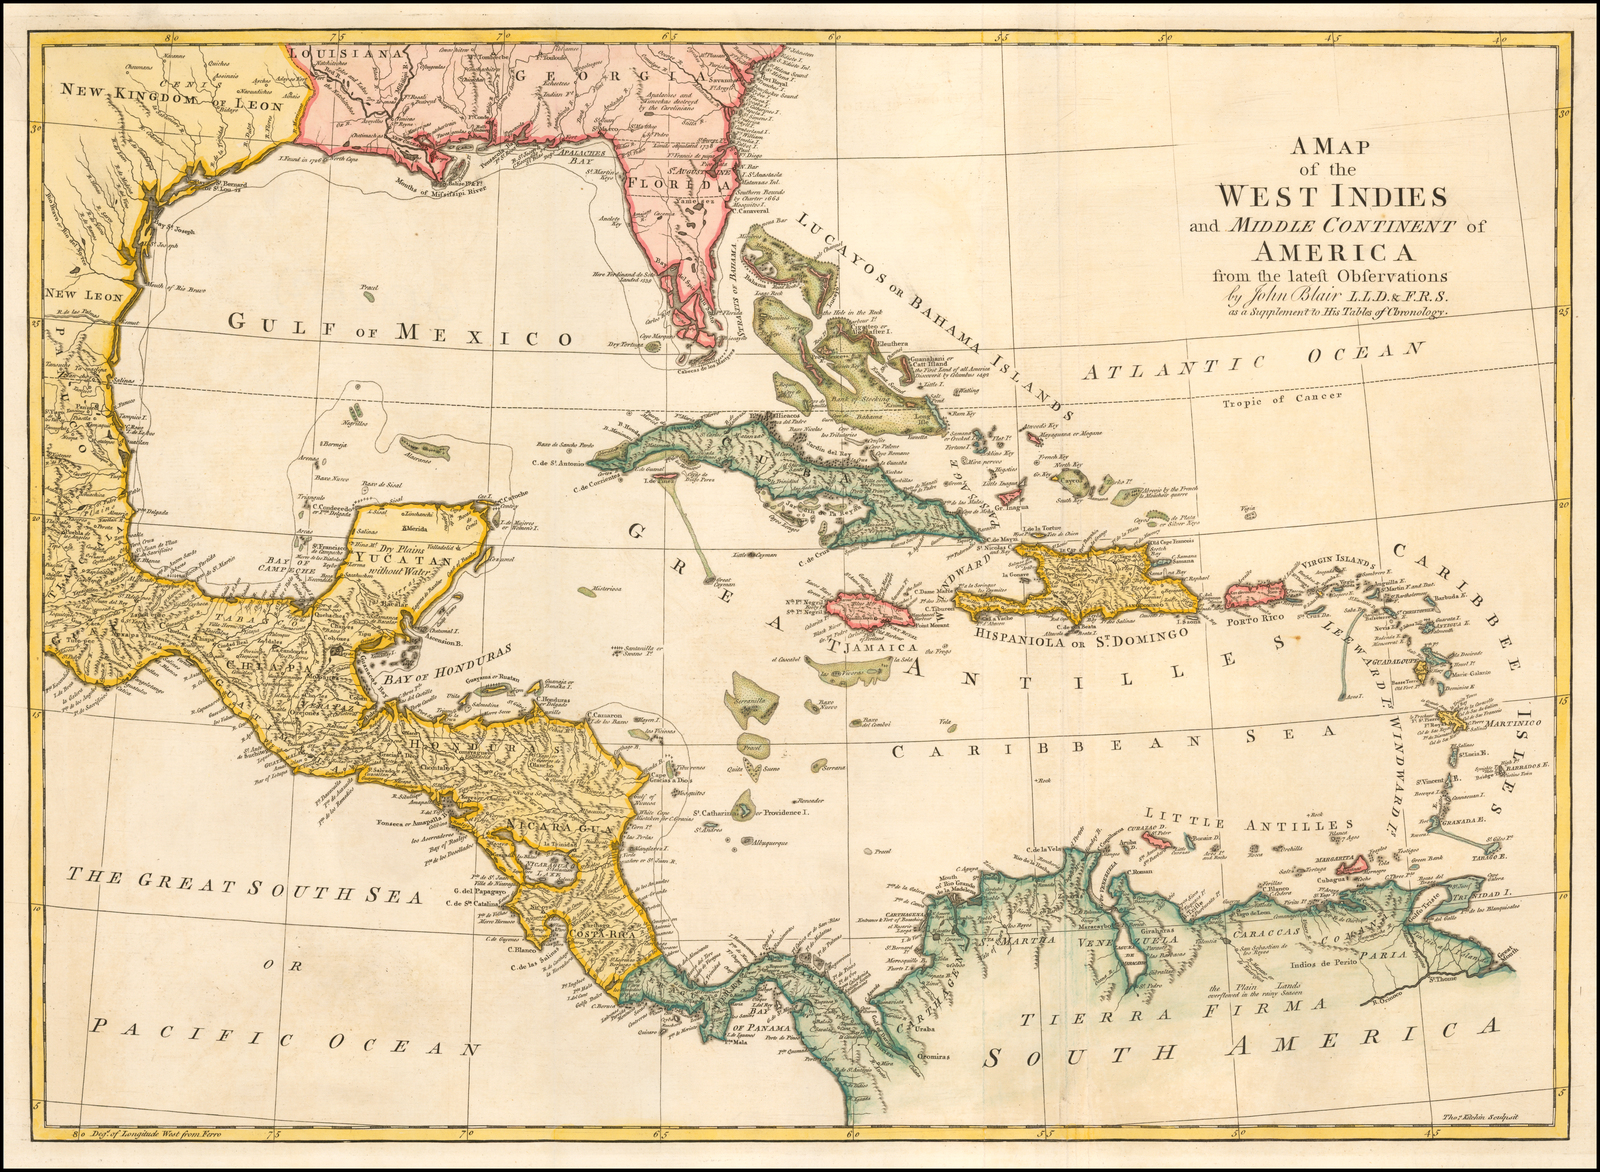 Map Of Asia Khand.A Map Of The West Indies And Middle Continent Of America From The